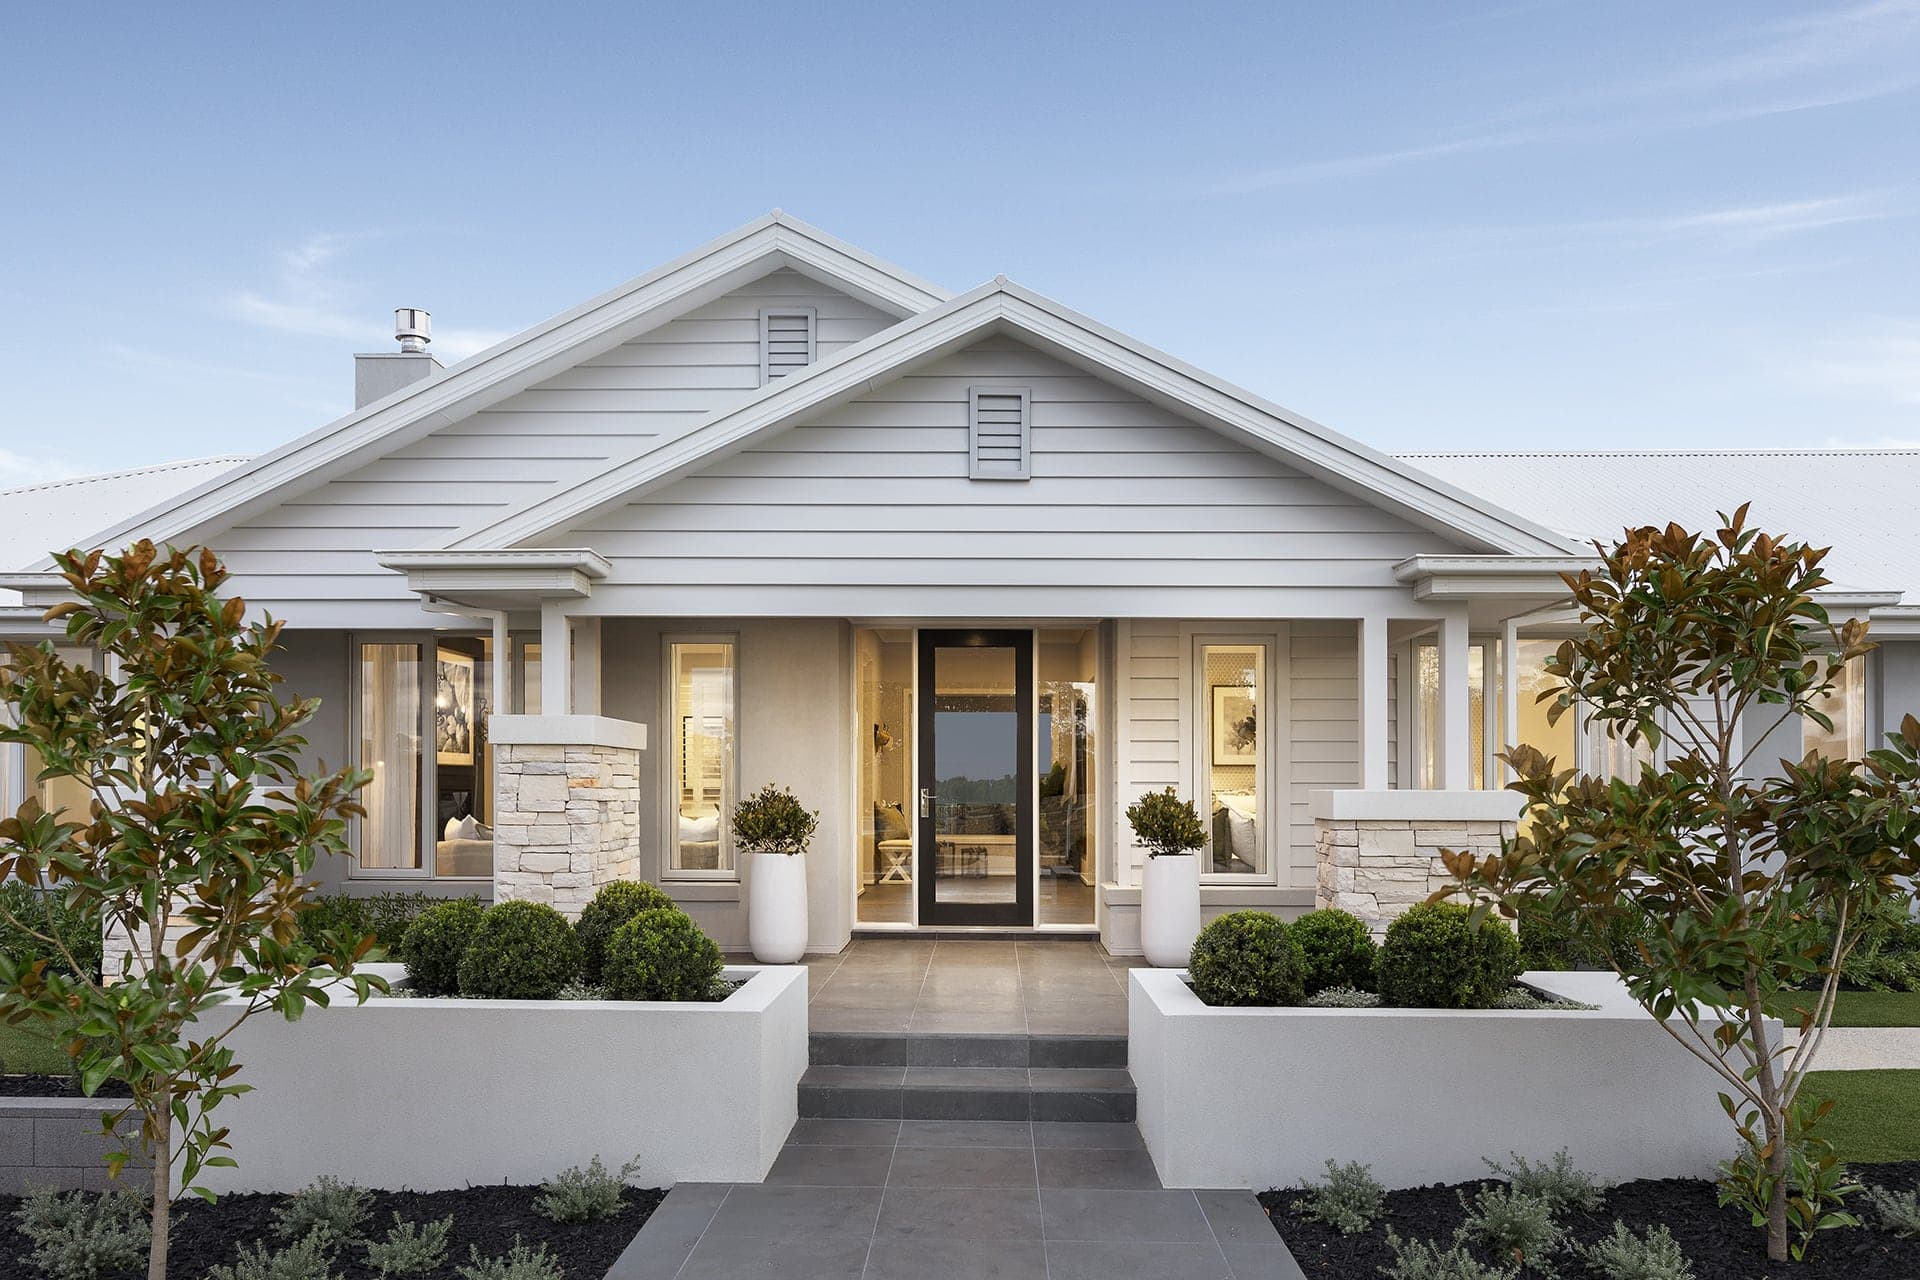 modern country interior design home hamptons style facade by metricon homes